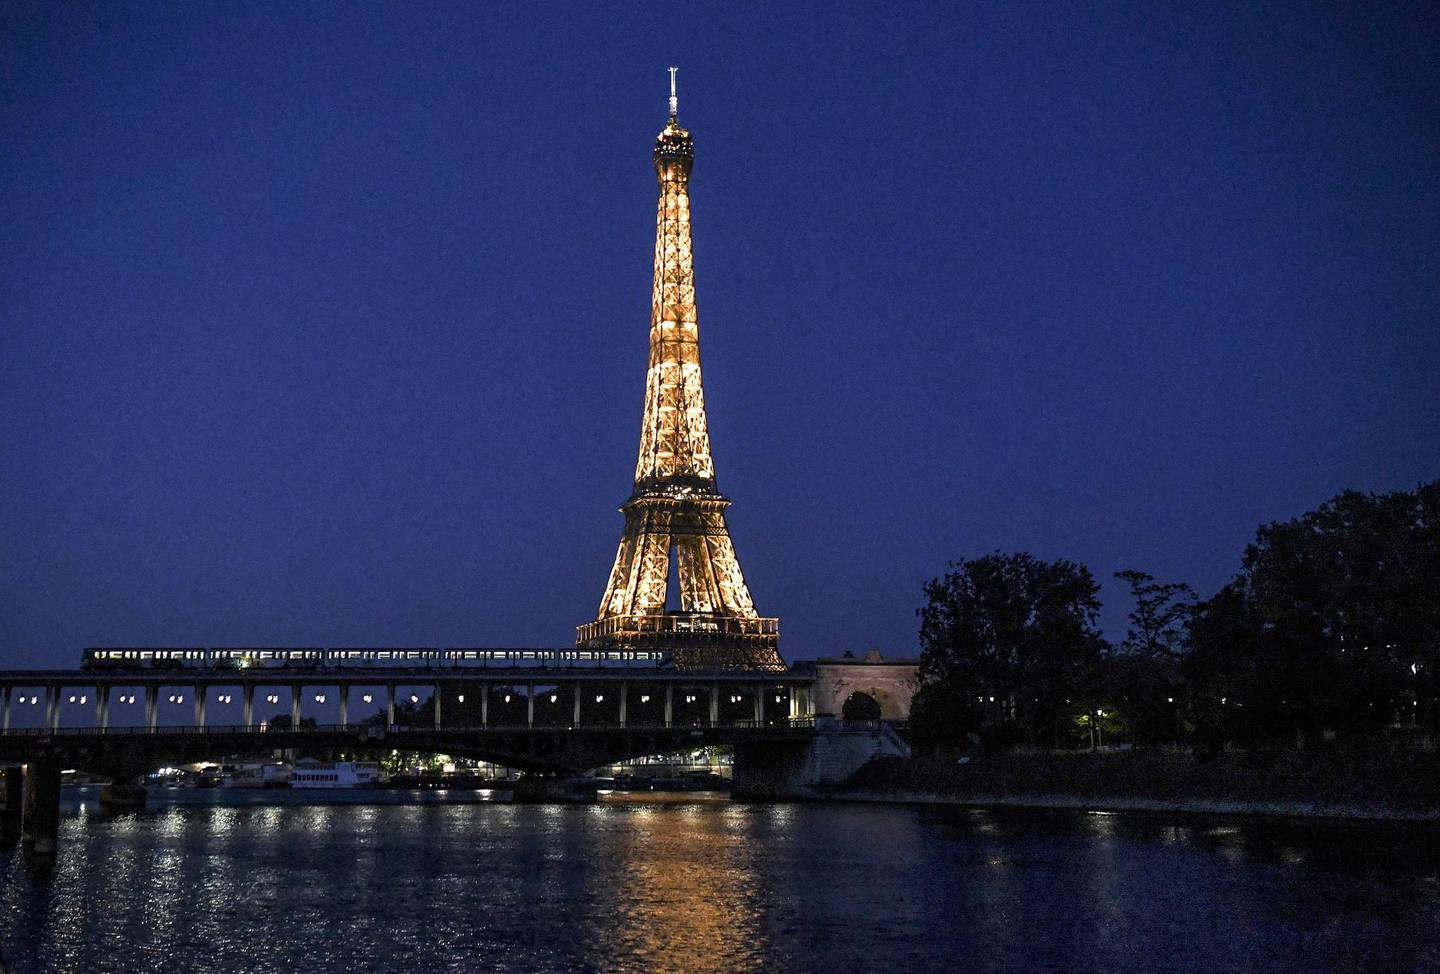 This photograph taken late April 25, 2020, shows a metro train passing along The Bir-Hakeim Bridge across The River Seine in front of The Eiffel Tower in Paris, on the 40th day of a lockdown in France aimed at curbing the spread of the COVID-19 pandemic, caused by the novel coronavirus. (Photo by ALAIN JOCARD / AFP)